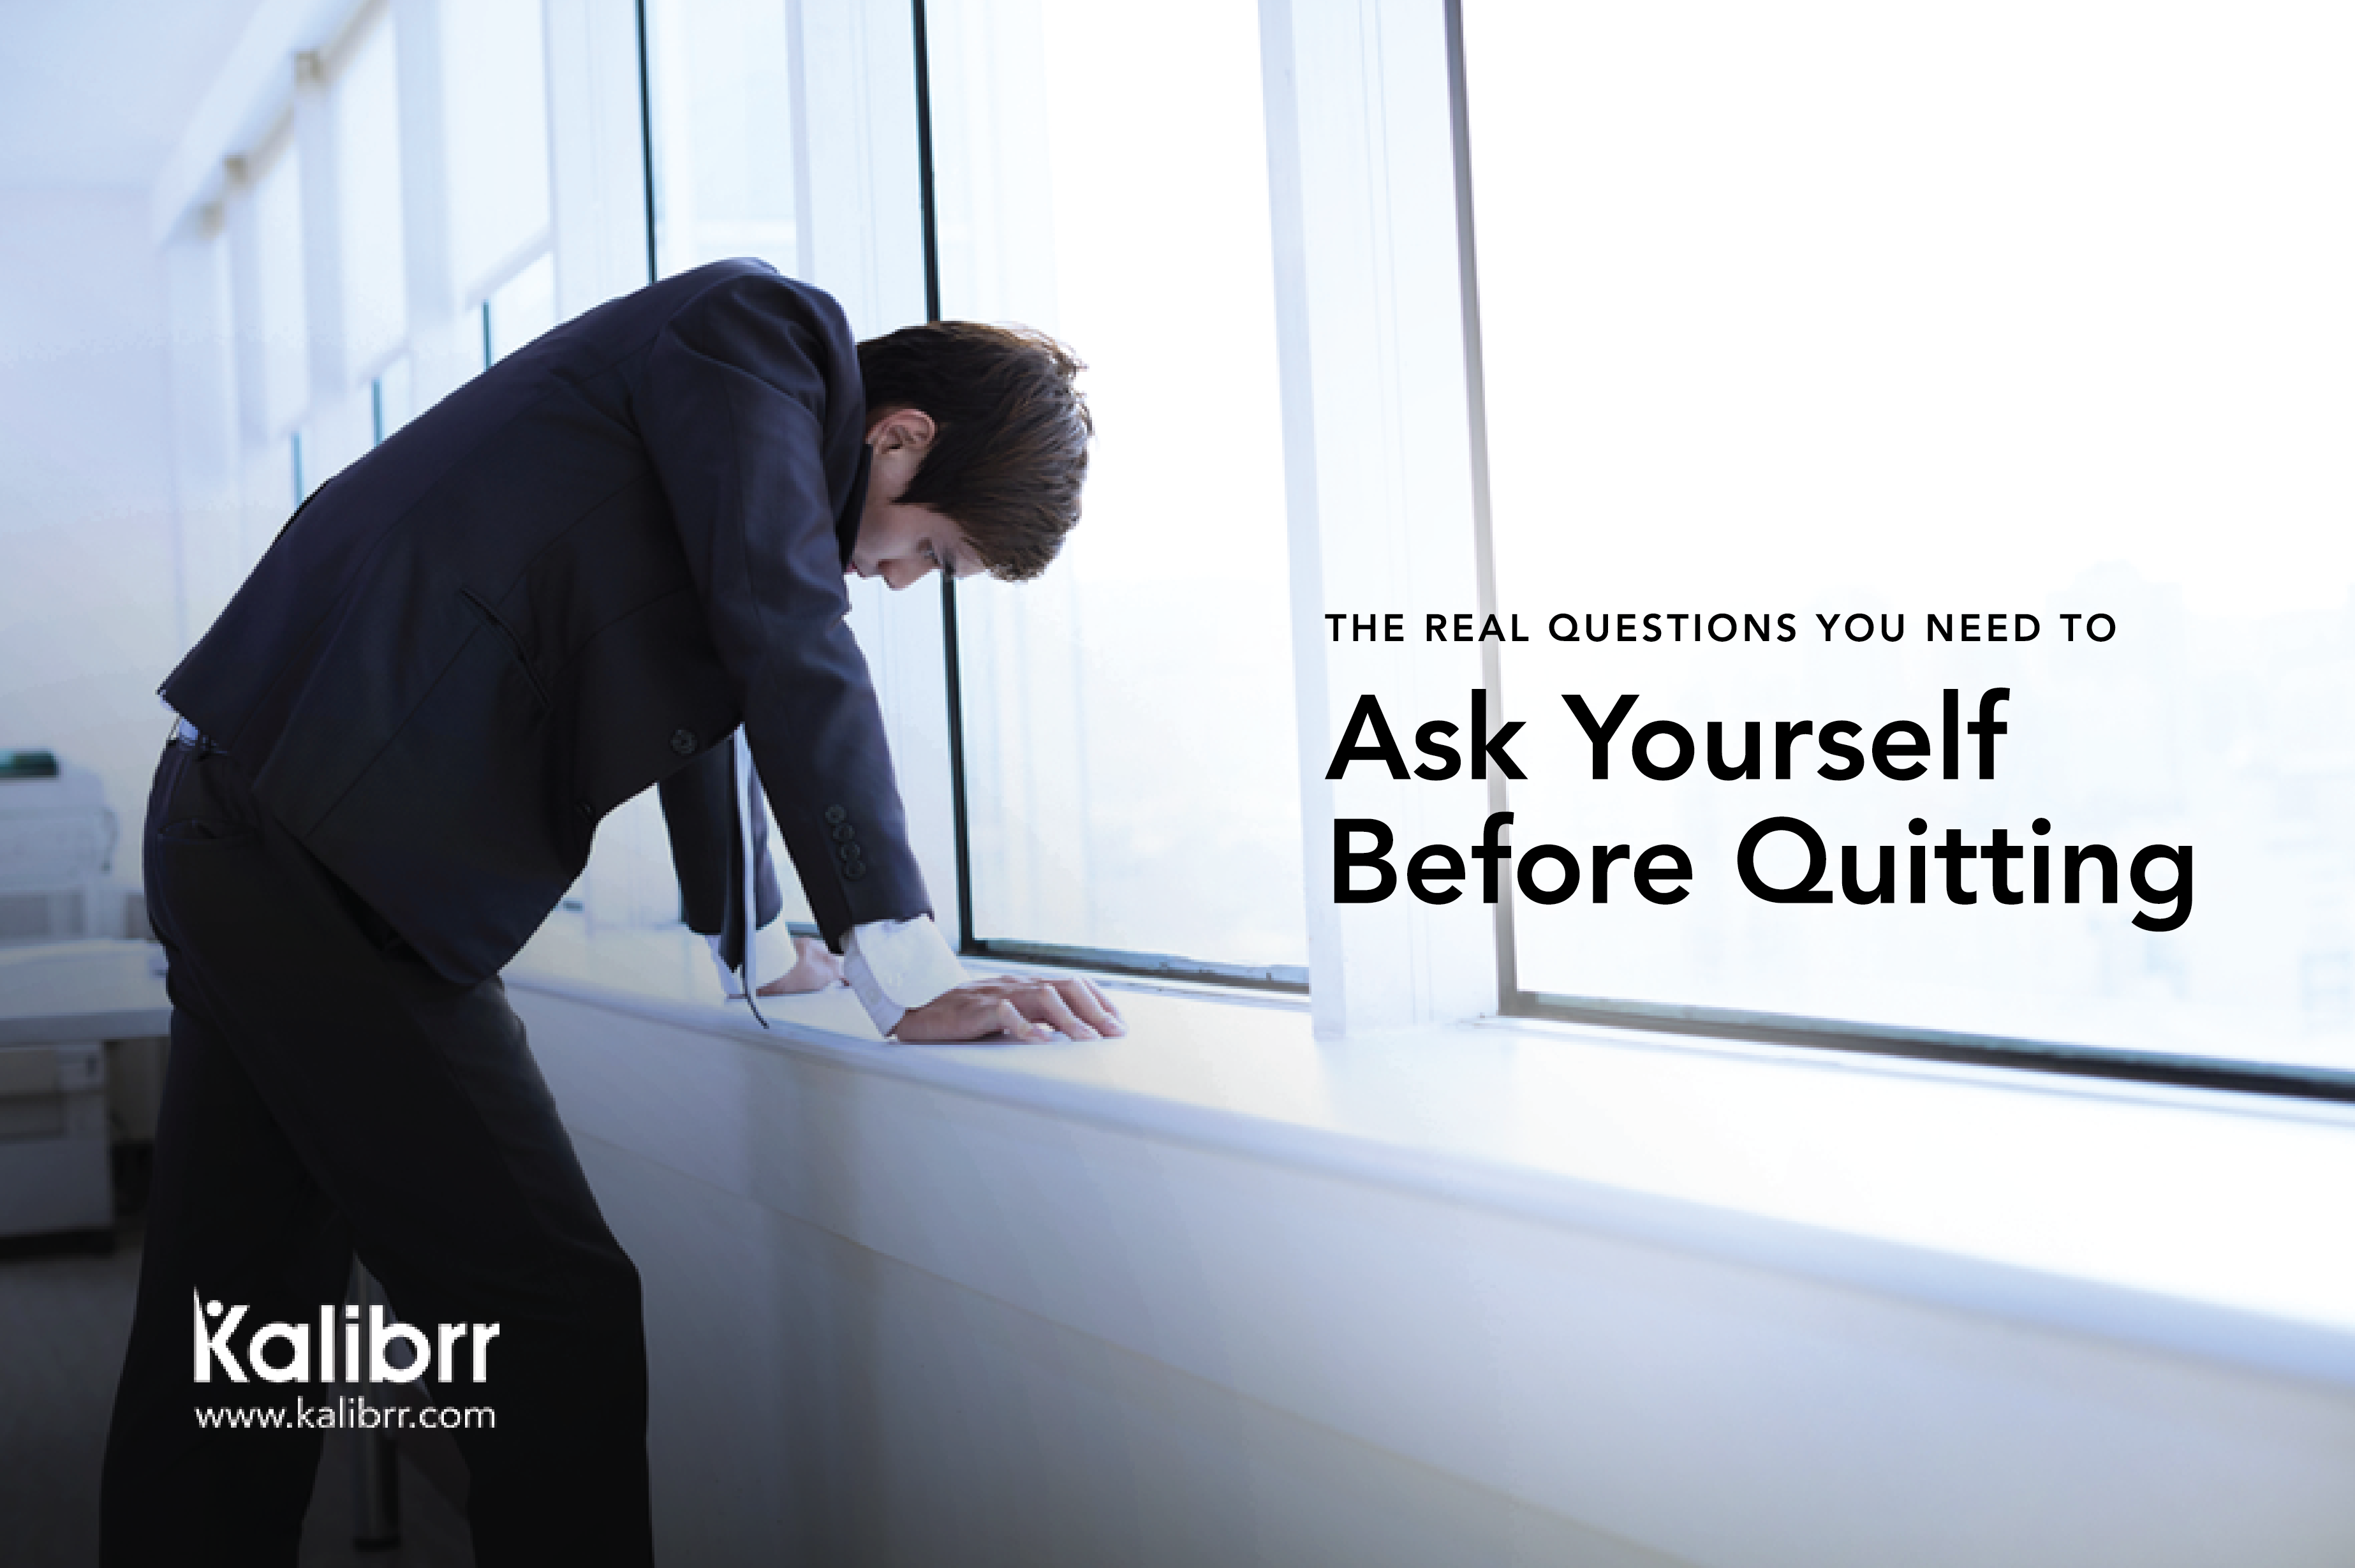 [FEATURE]_The_Real_Questions_You_Need_to_Ask_Yourself_Before_Quitting-01